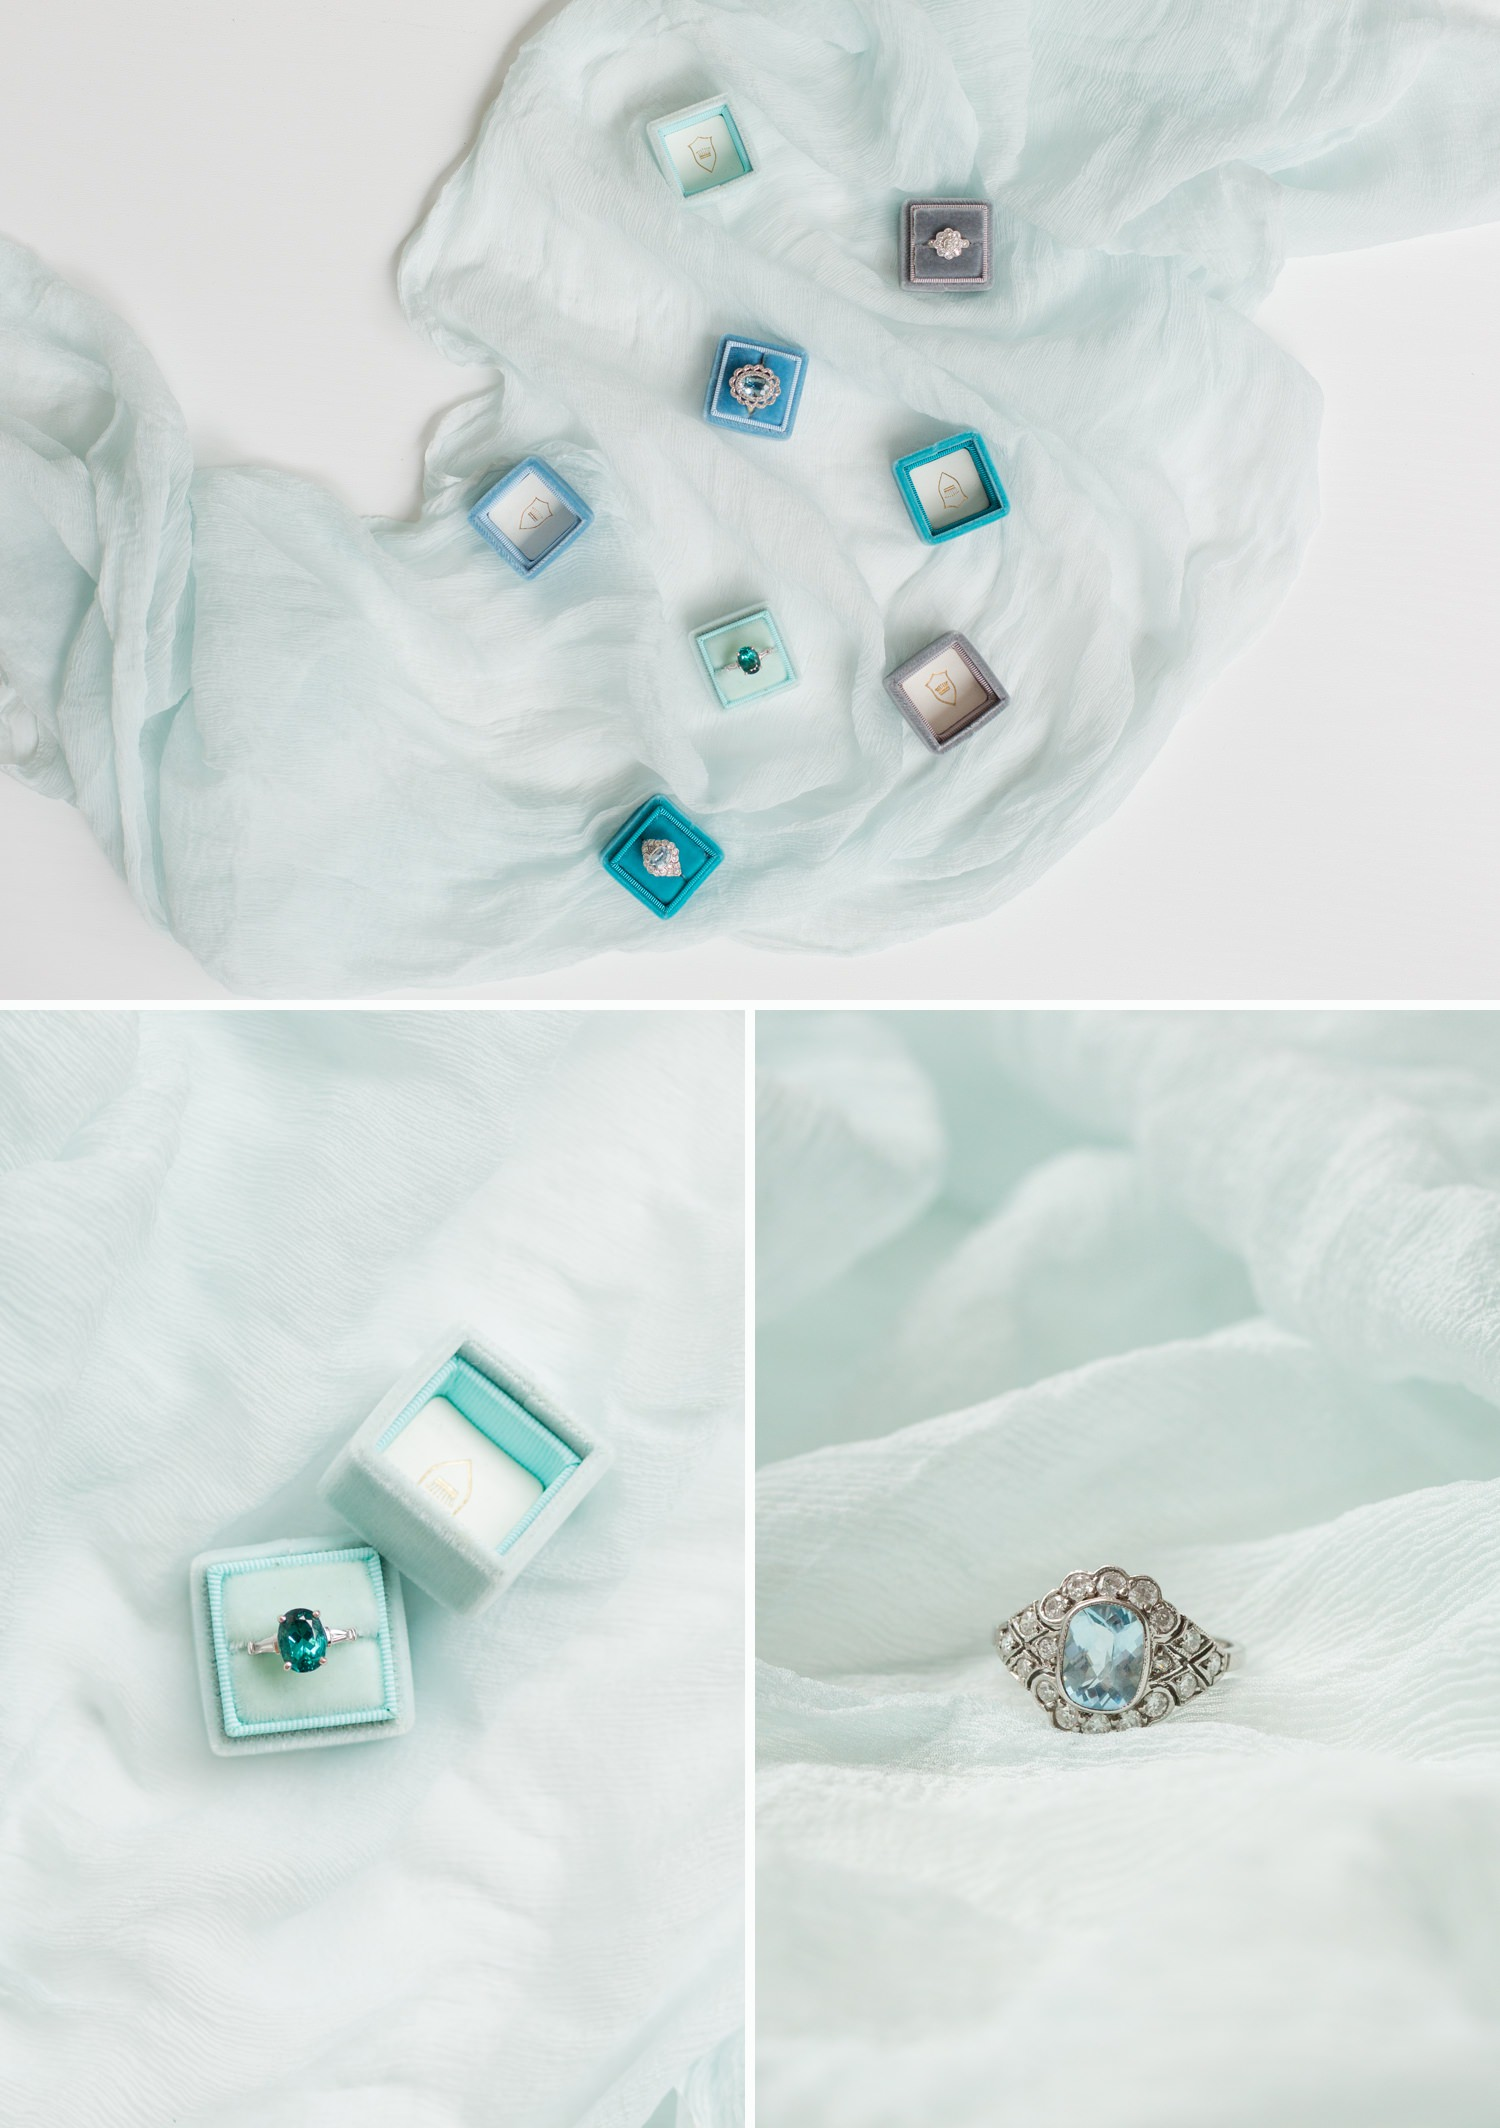 timeless engagement rings, antique rings on silk fabric